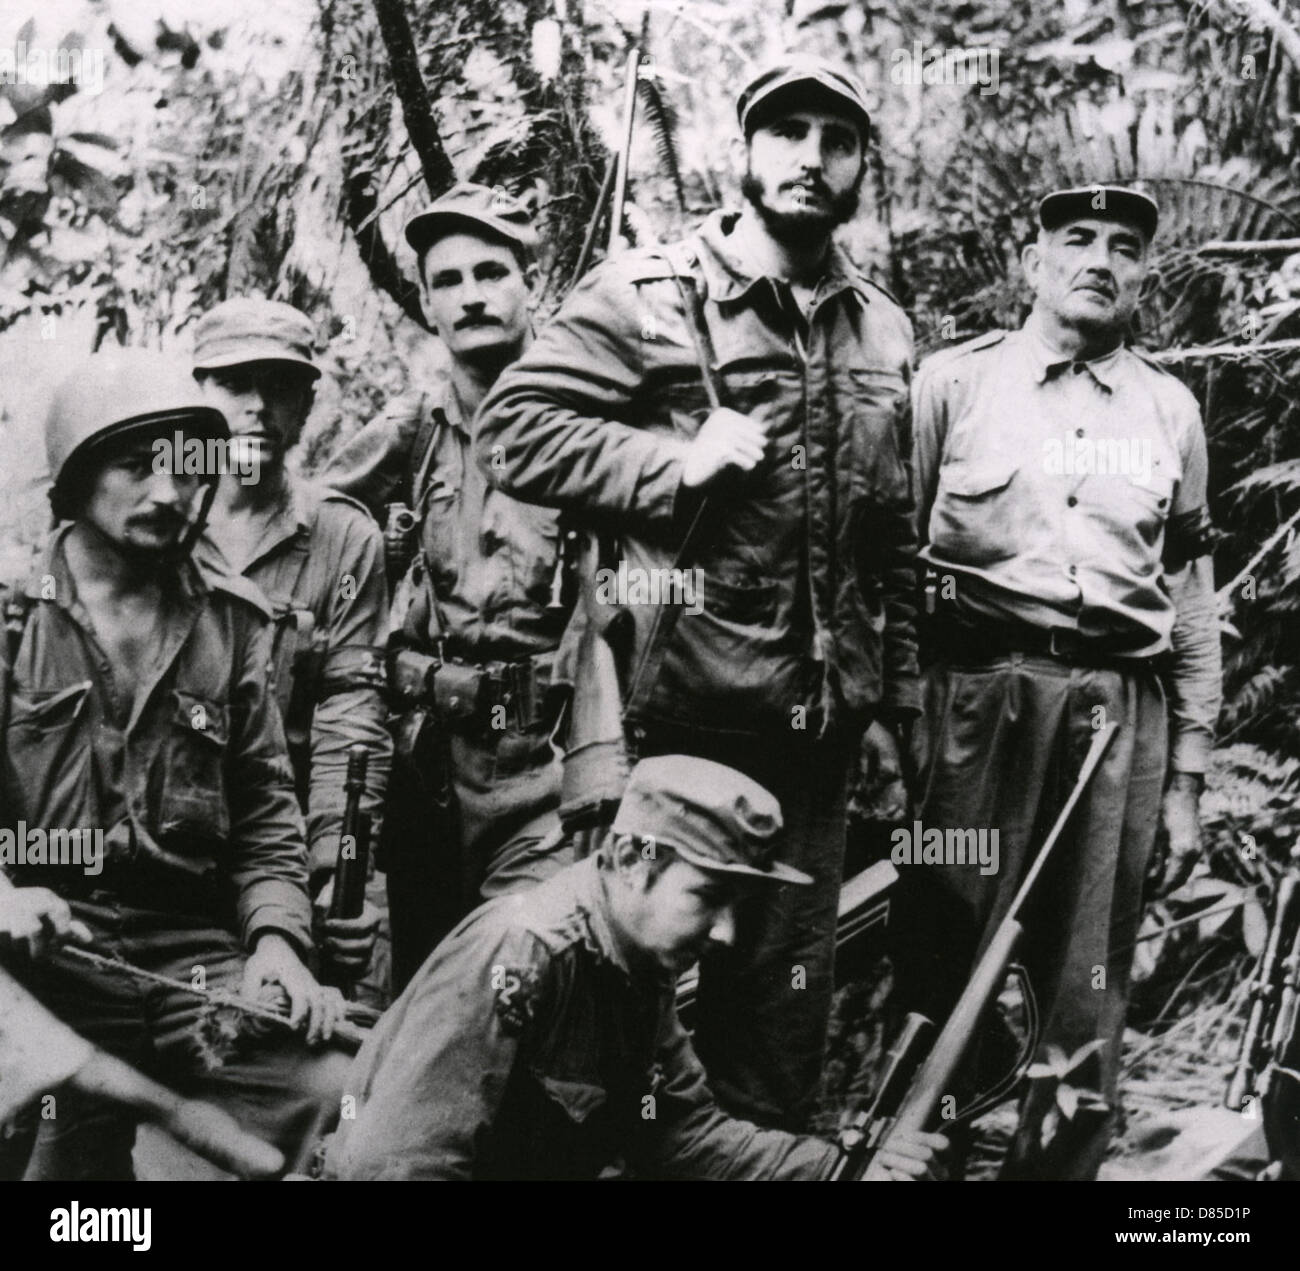 the early life and rise of fidel castro Fidel castro (1926-) president of cuba, communist revolutionary, and implacable foe of us foreign policy, fidel castro began his life on a sugar plantation in.